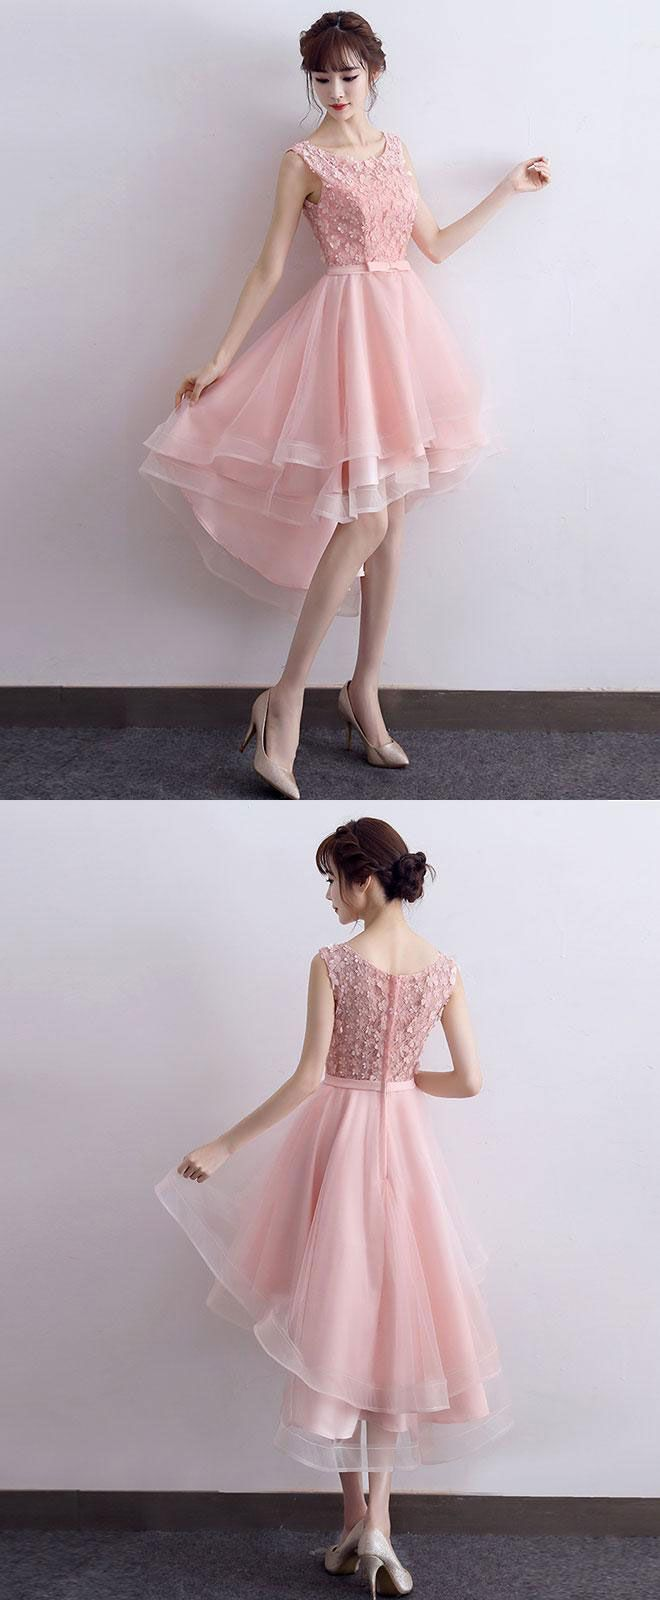 Cute pink lace short prom dress, high low evening dress, pink homecoming dress, cocktail dress